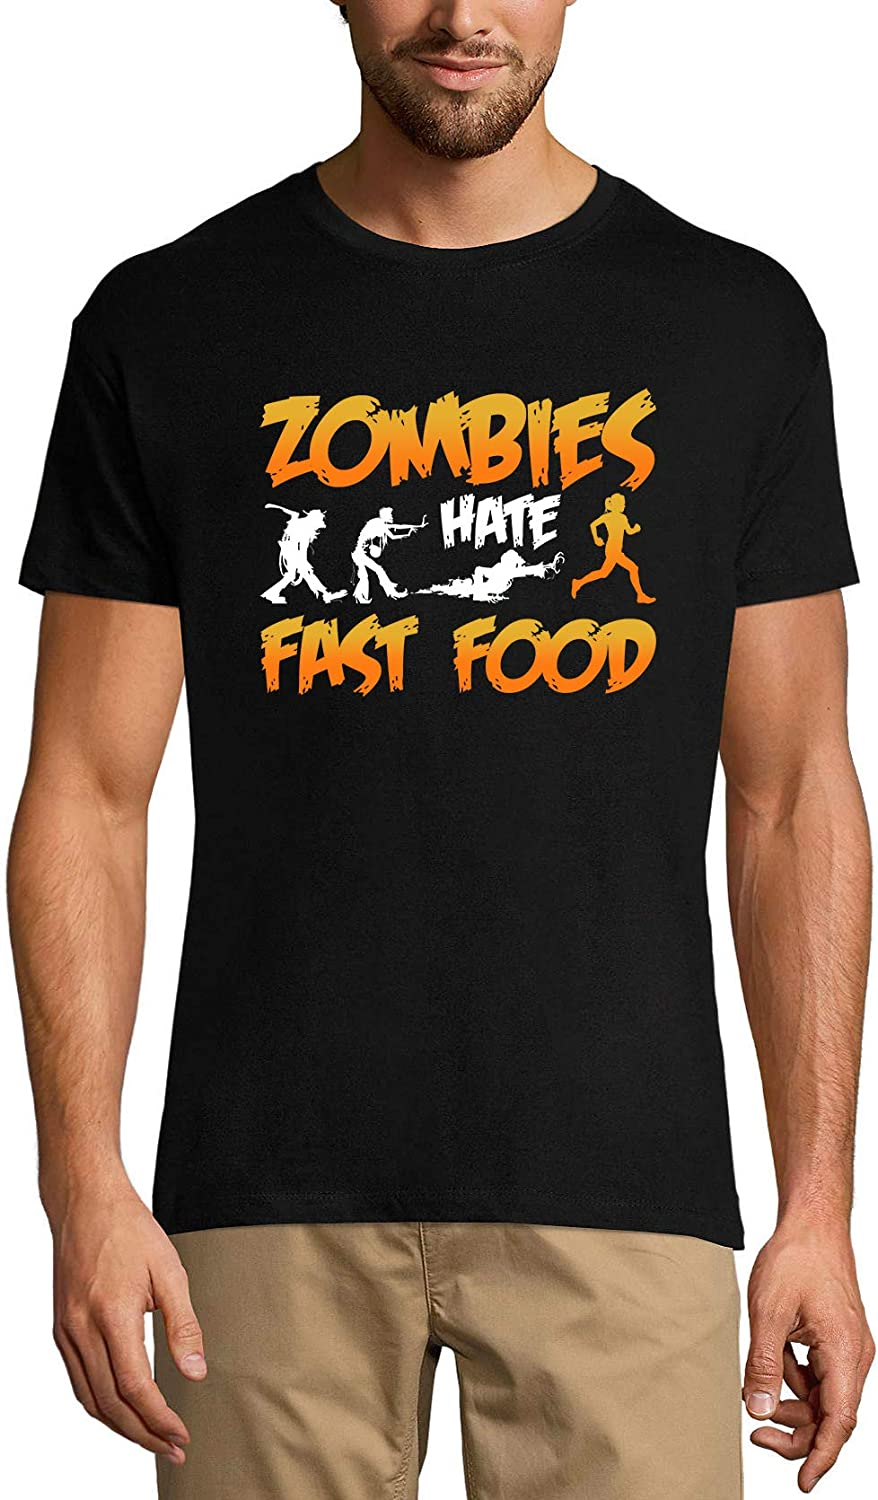 Ultrabasic Men's Novelty T-Shirt Zombies Hate Fast Food - Funny Runner Tee Shirt